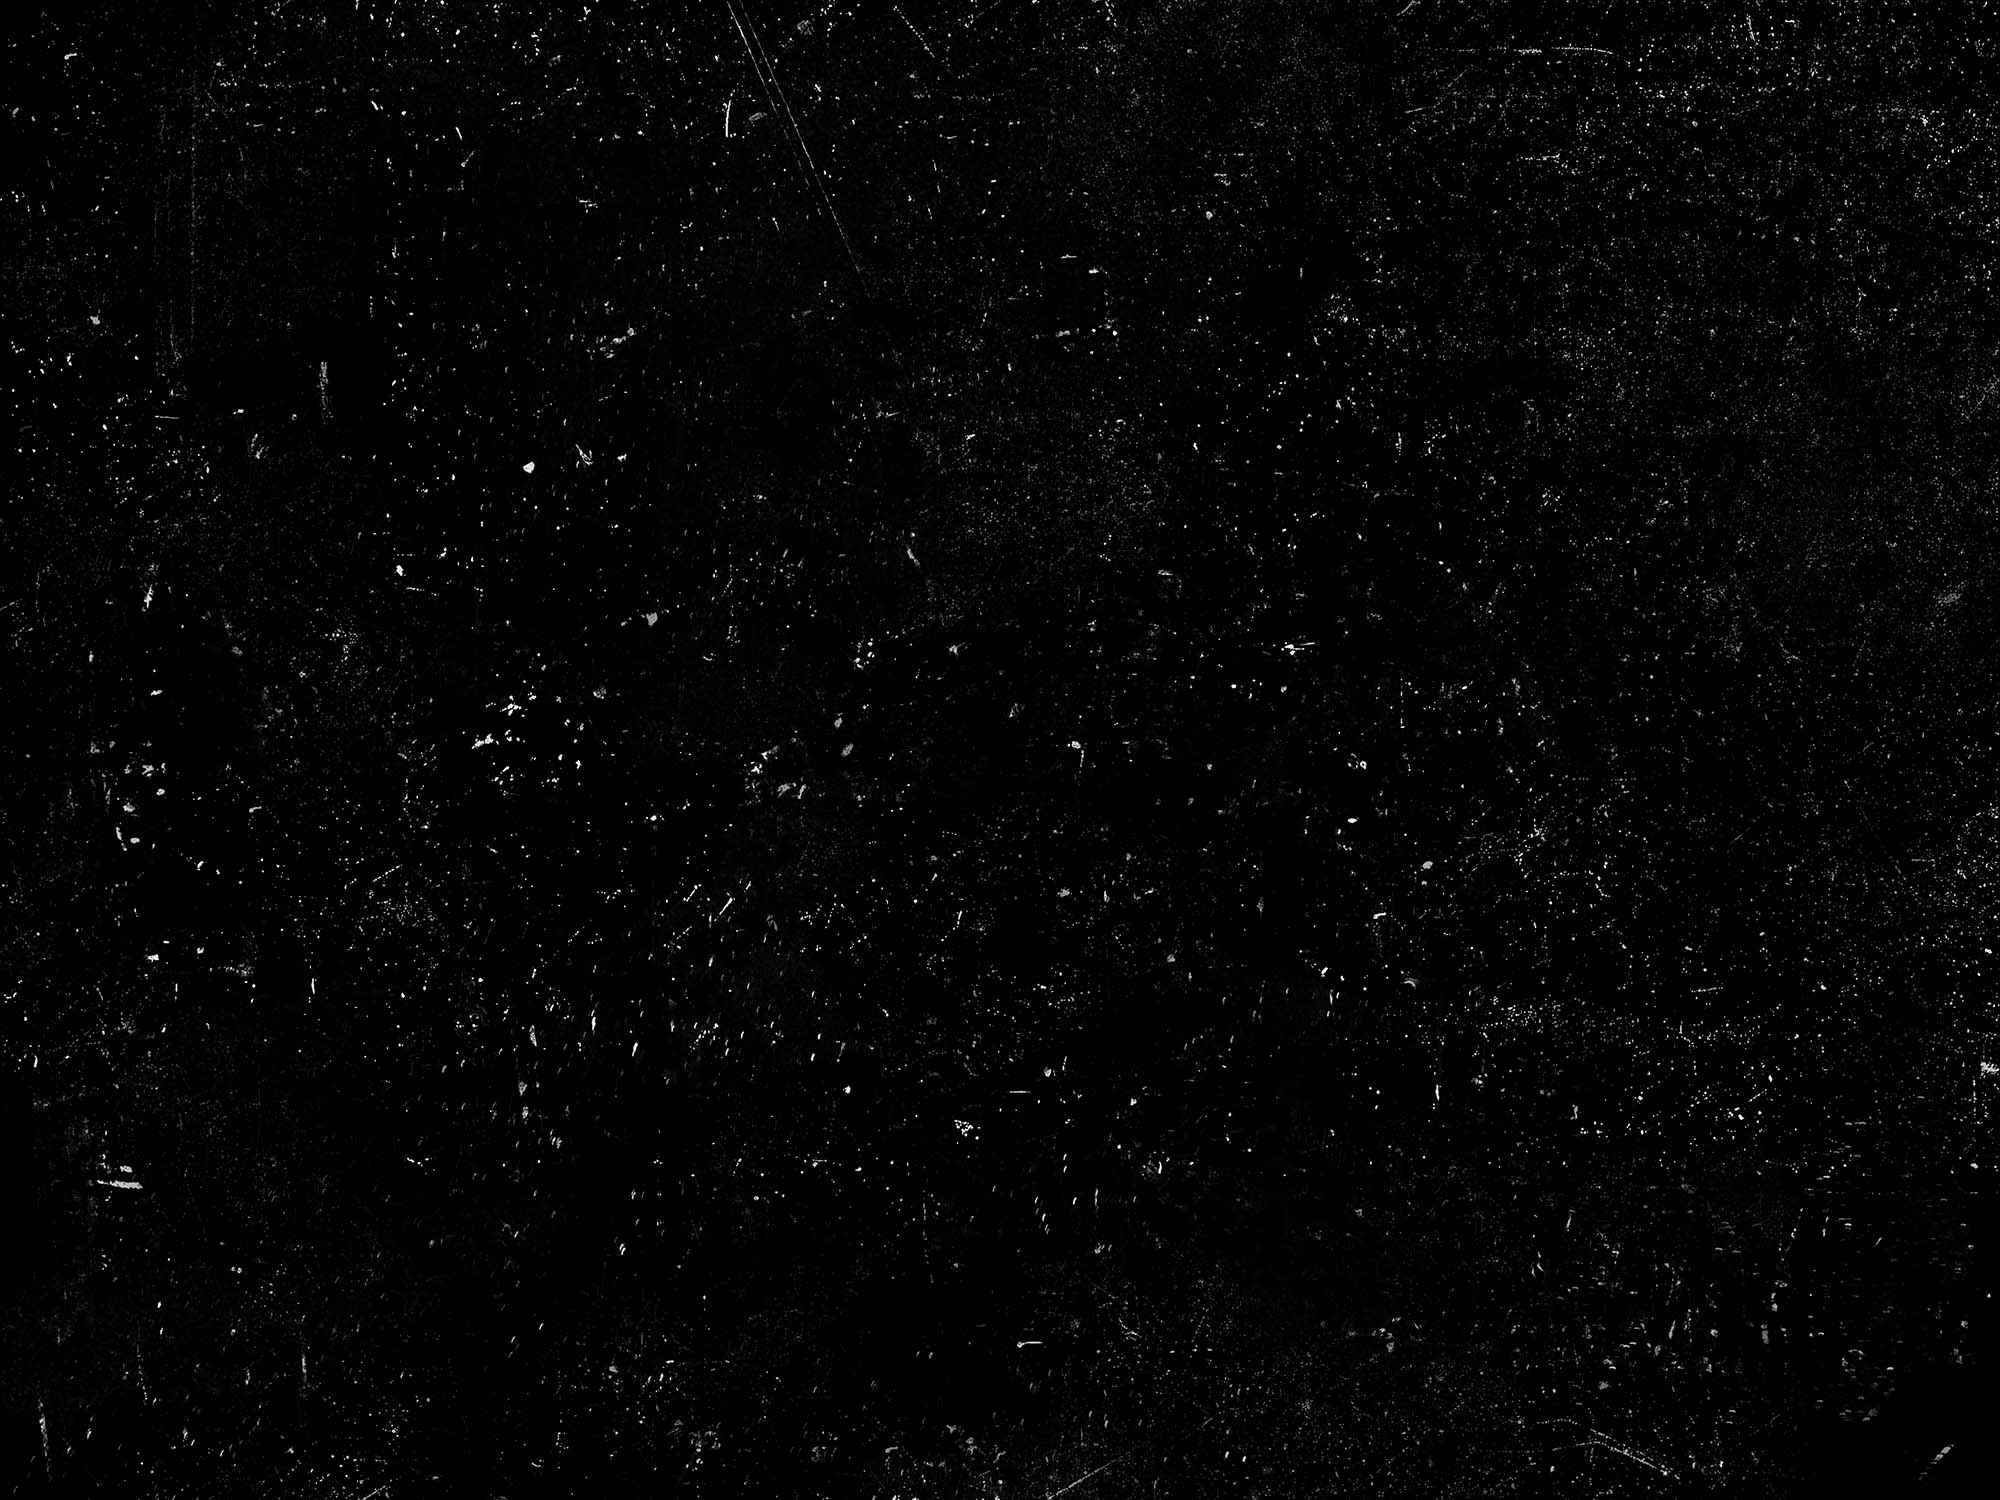 Free Dust And Noise Overlay Textures Overlays Texture Graphic Design Texture